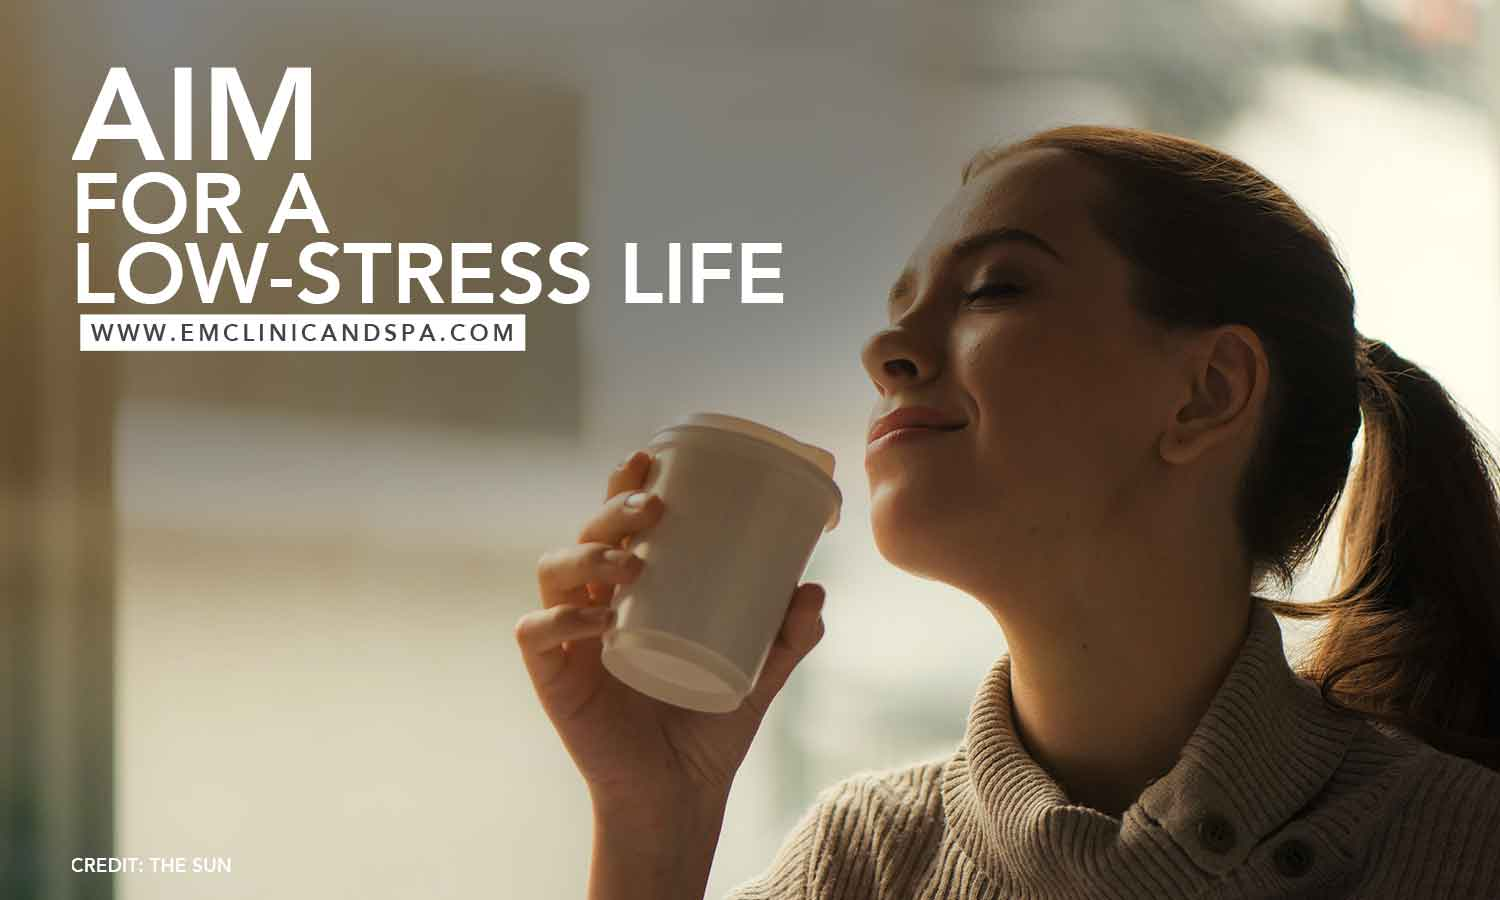 Aim for a low-stress life